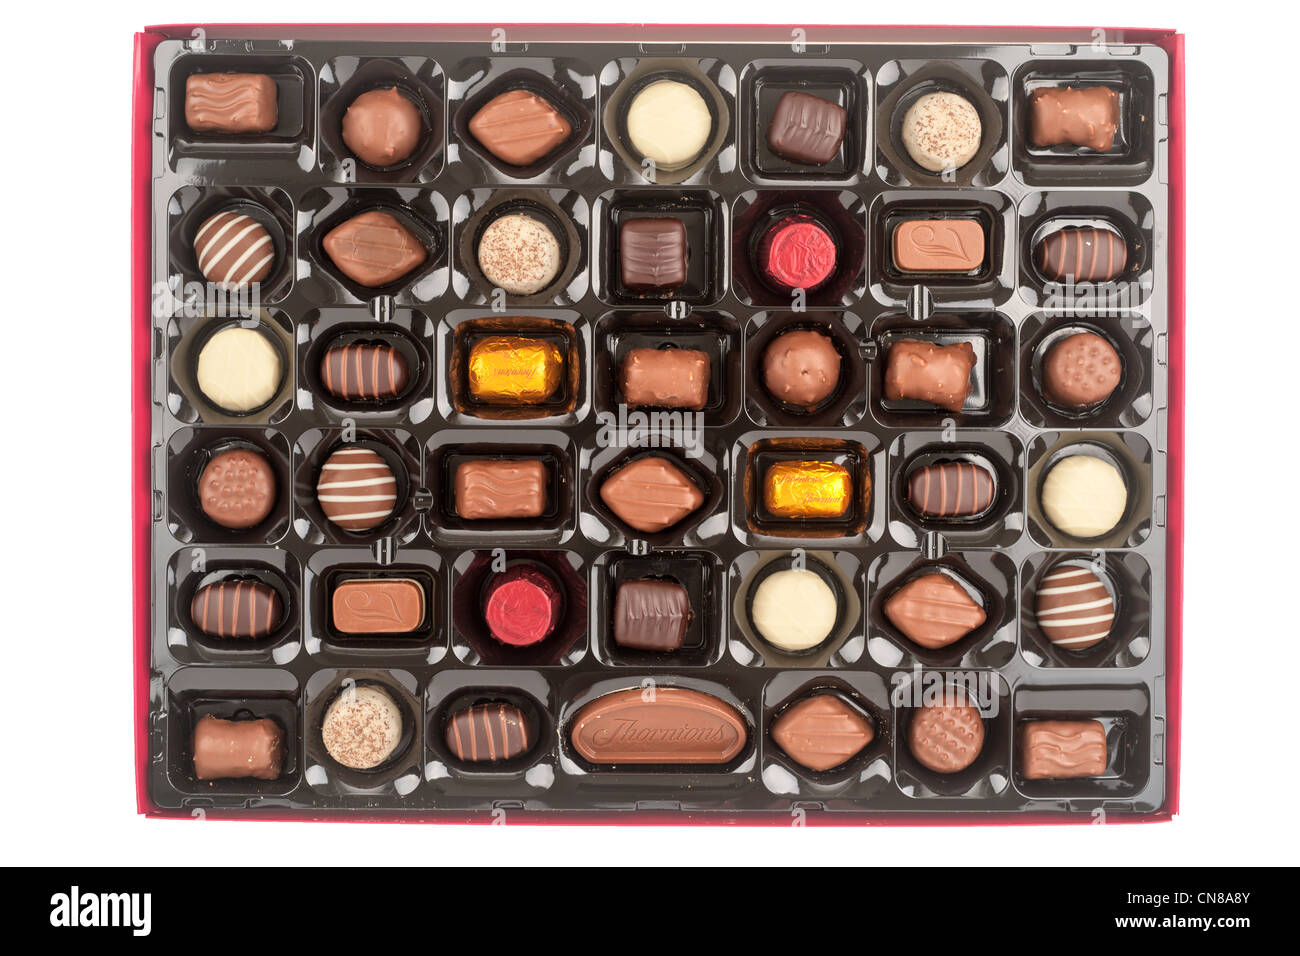 Large tray of Thorntons Classic chocolates - Stock Image